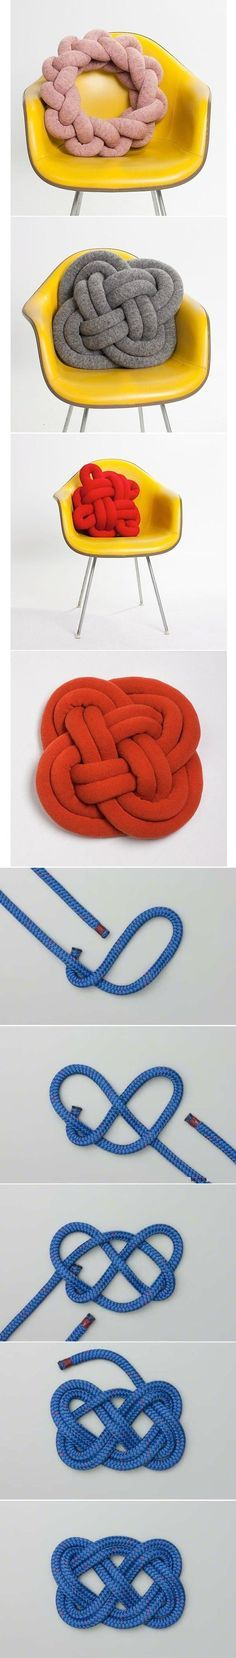 DIY Knot Pillow                                                                                                                                                                                 More